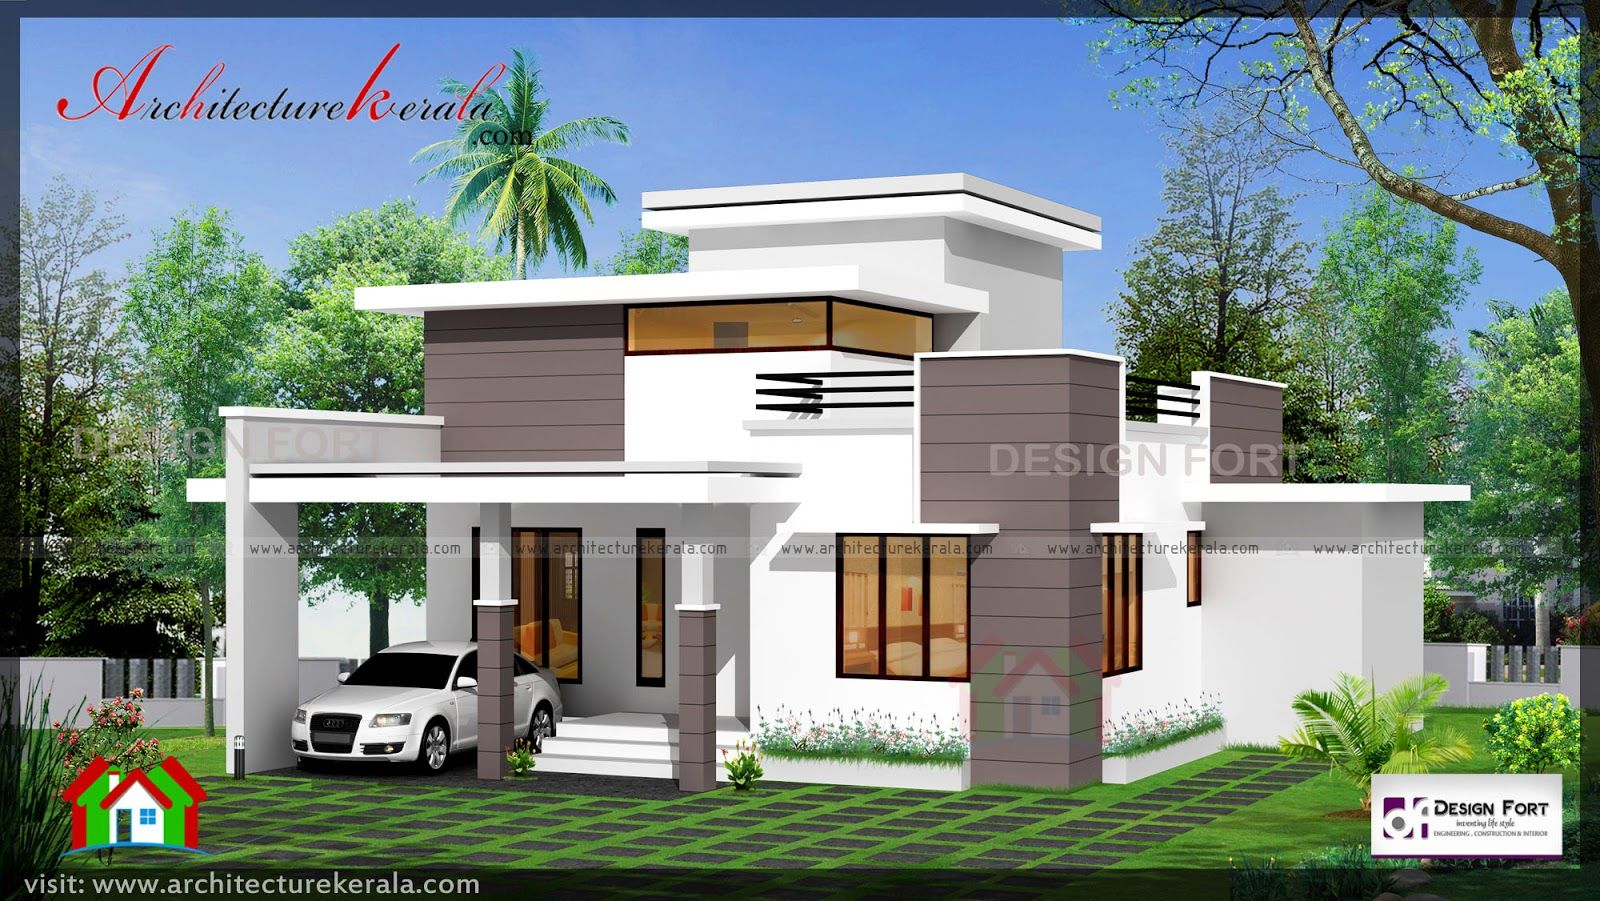 1000 Square Feet 2 Bed House Plan And Elevation Architecture Kerala Kerala House Design Small House Design Plans Budget House Plans